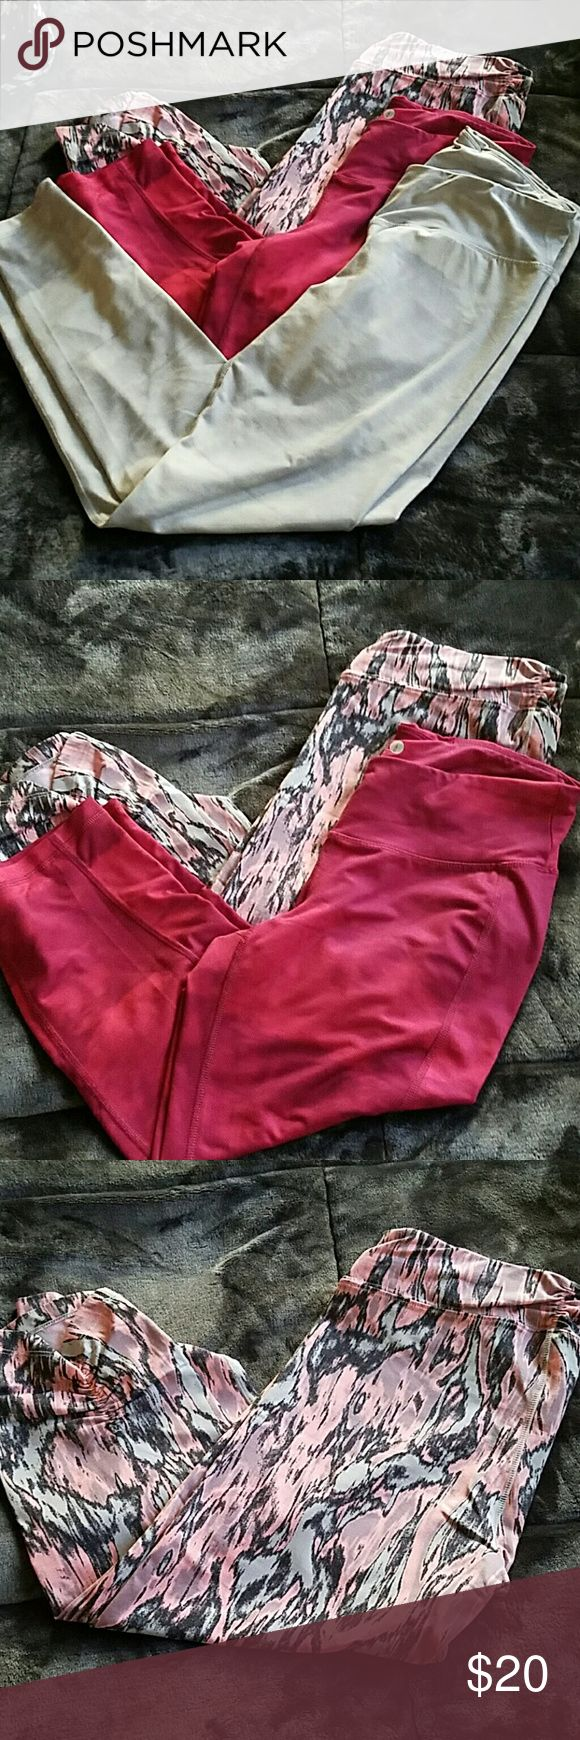 Old navy gym pants 1 full lenght old navy gym pants, 1 crop old navy and the light pink crops are calvin klein. All good condition Old Navy Pants Track Pants & Joggers